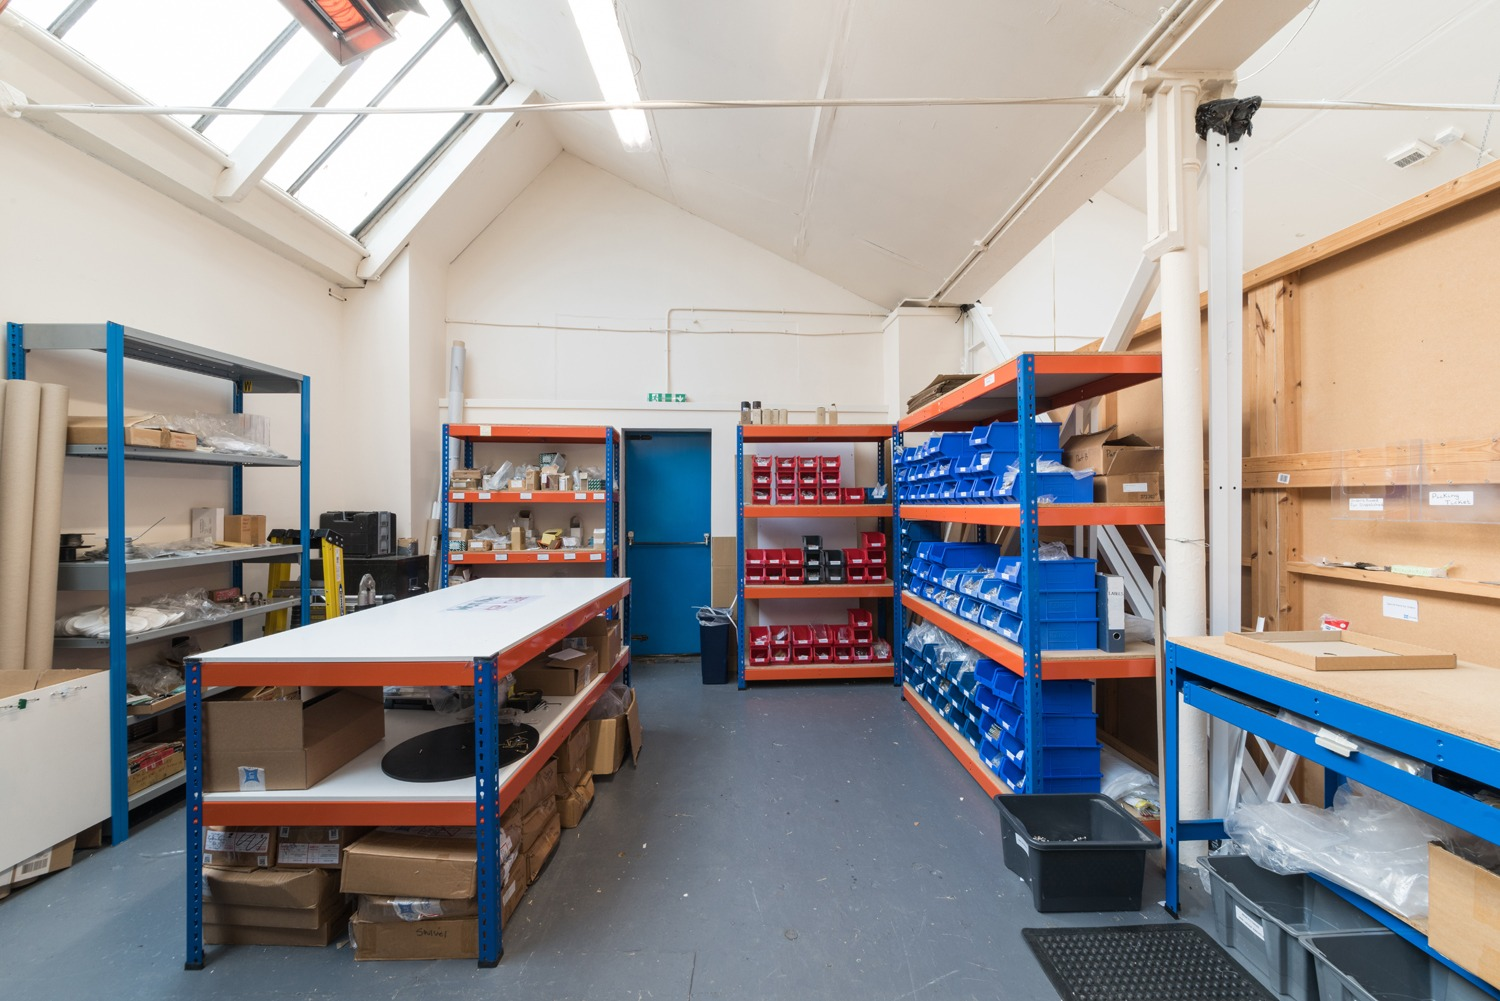 Stirling Enterprise Park Large Work Space Office and Unit Storage Space